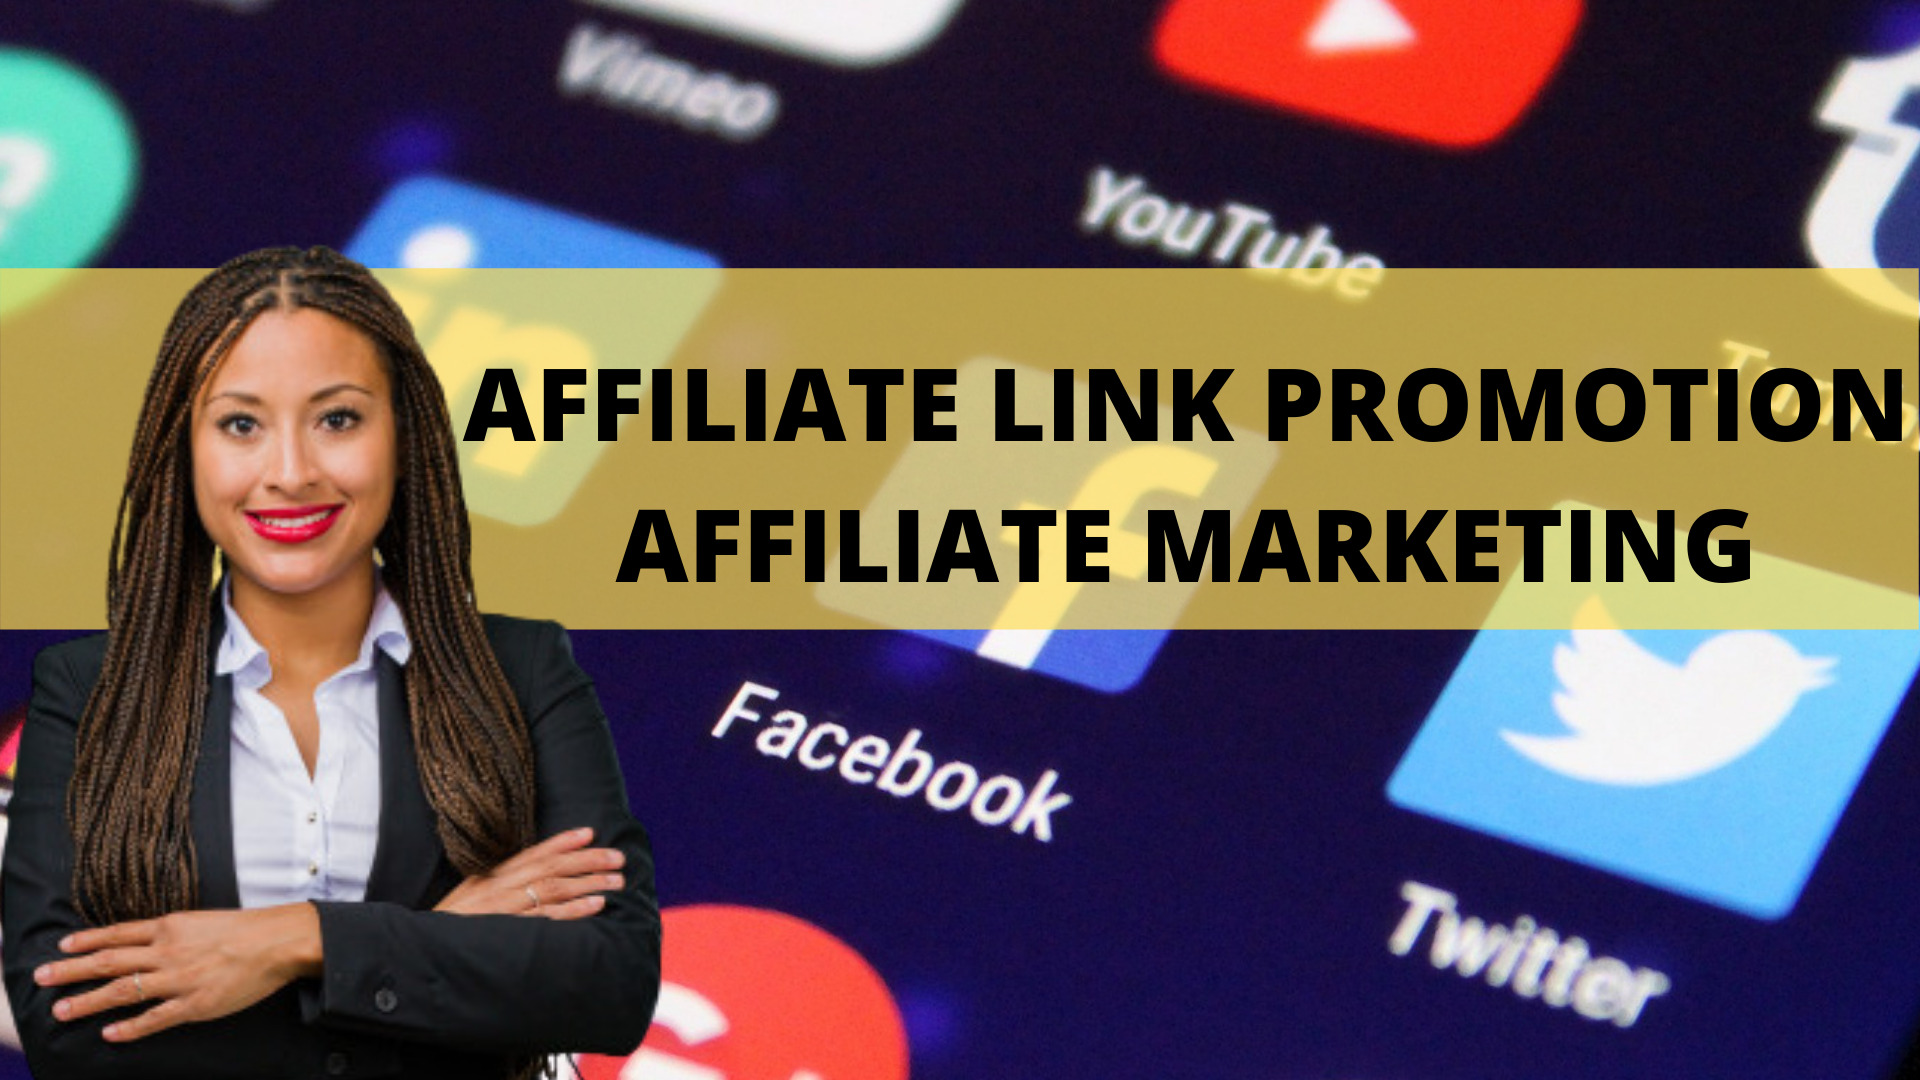 I will viral affiliate link promotion click bank teespring link promotion, FiverrBox